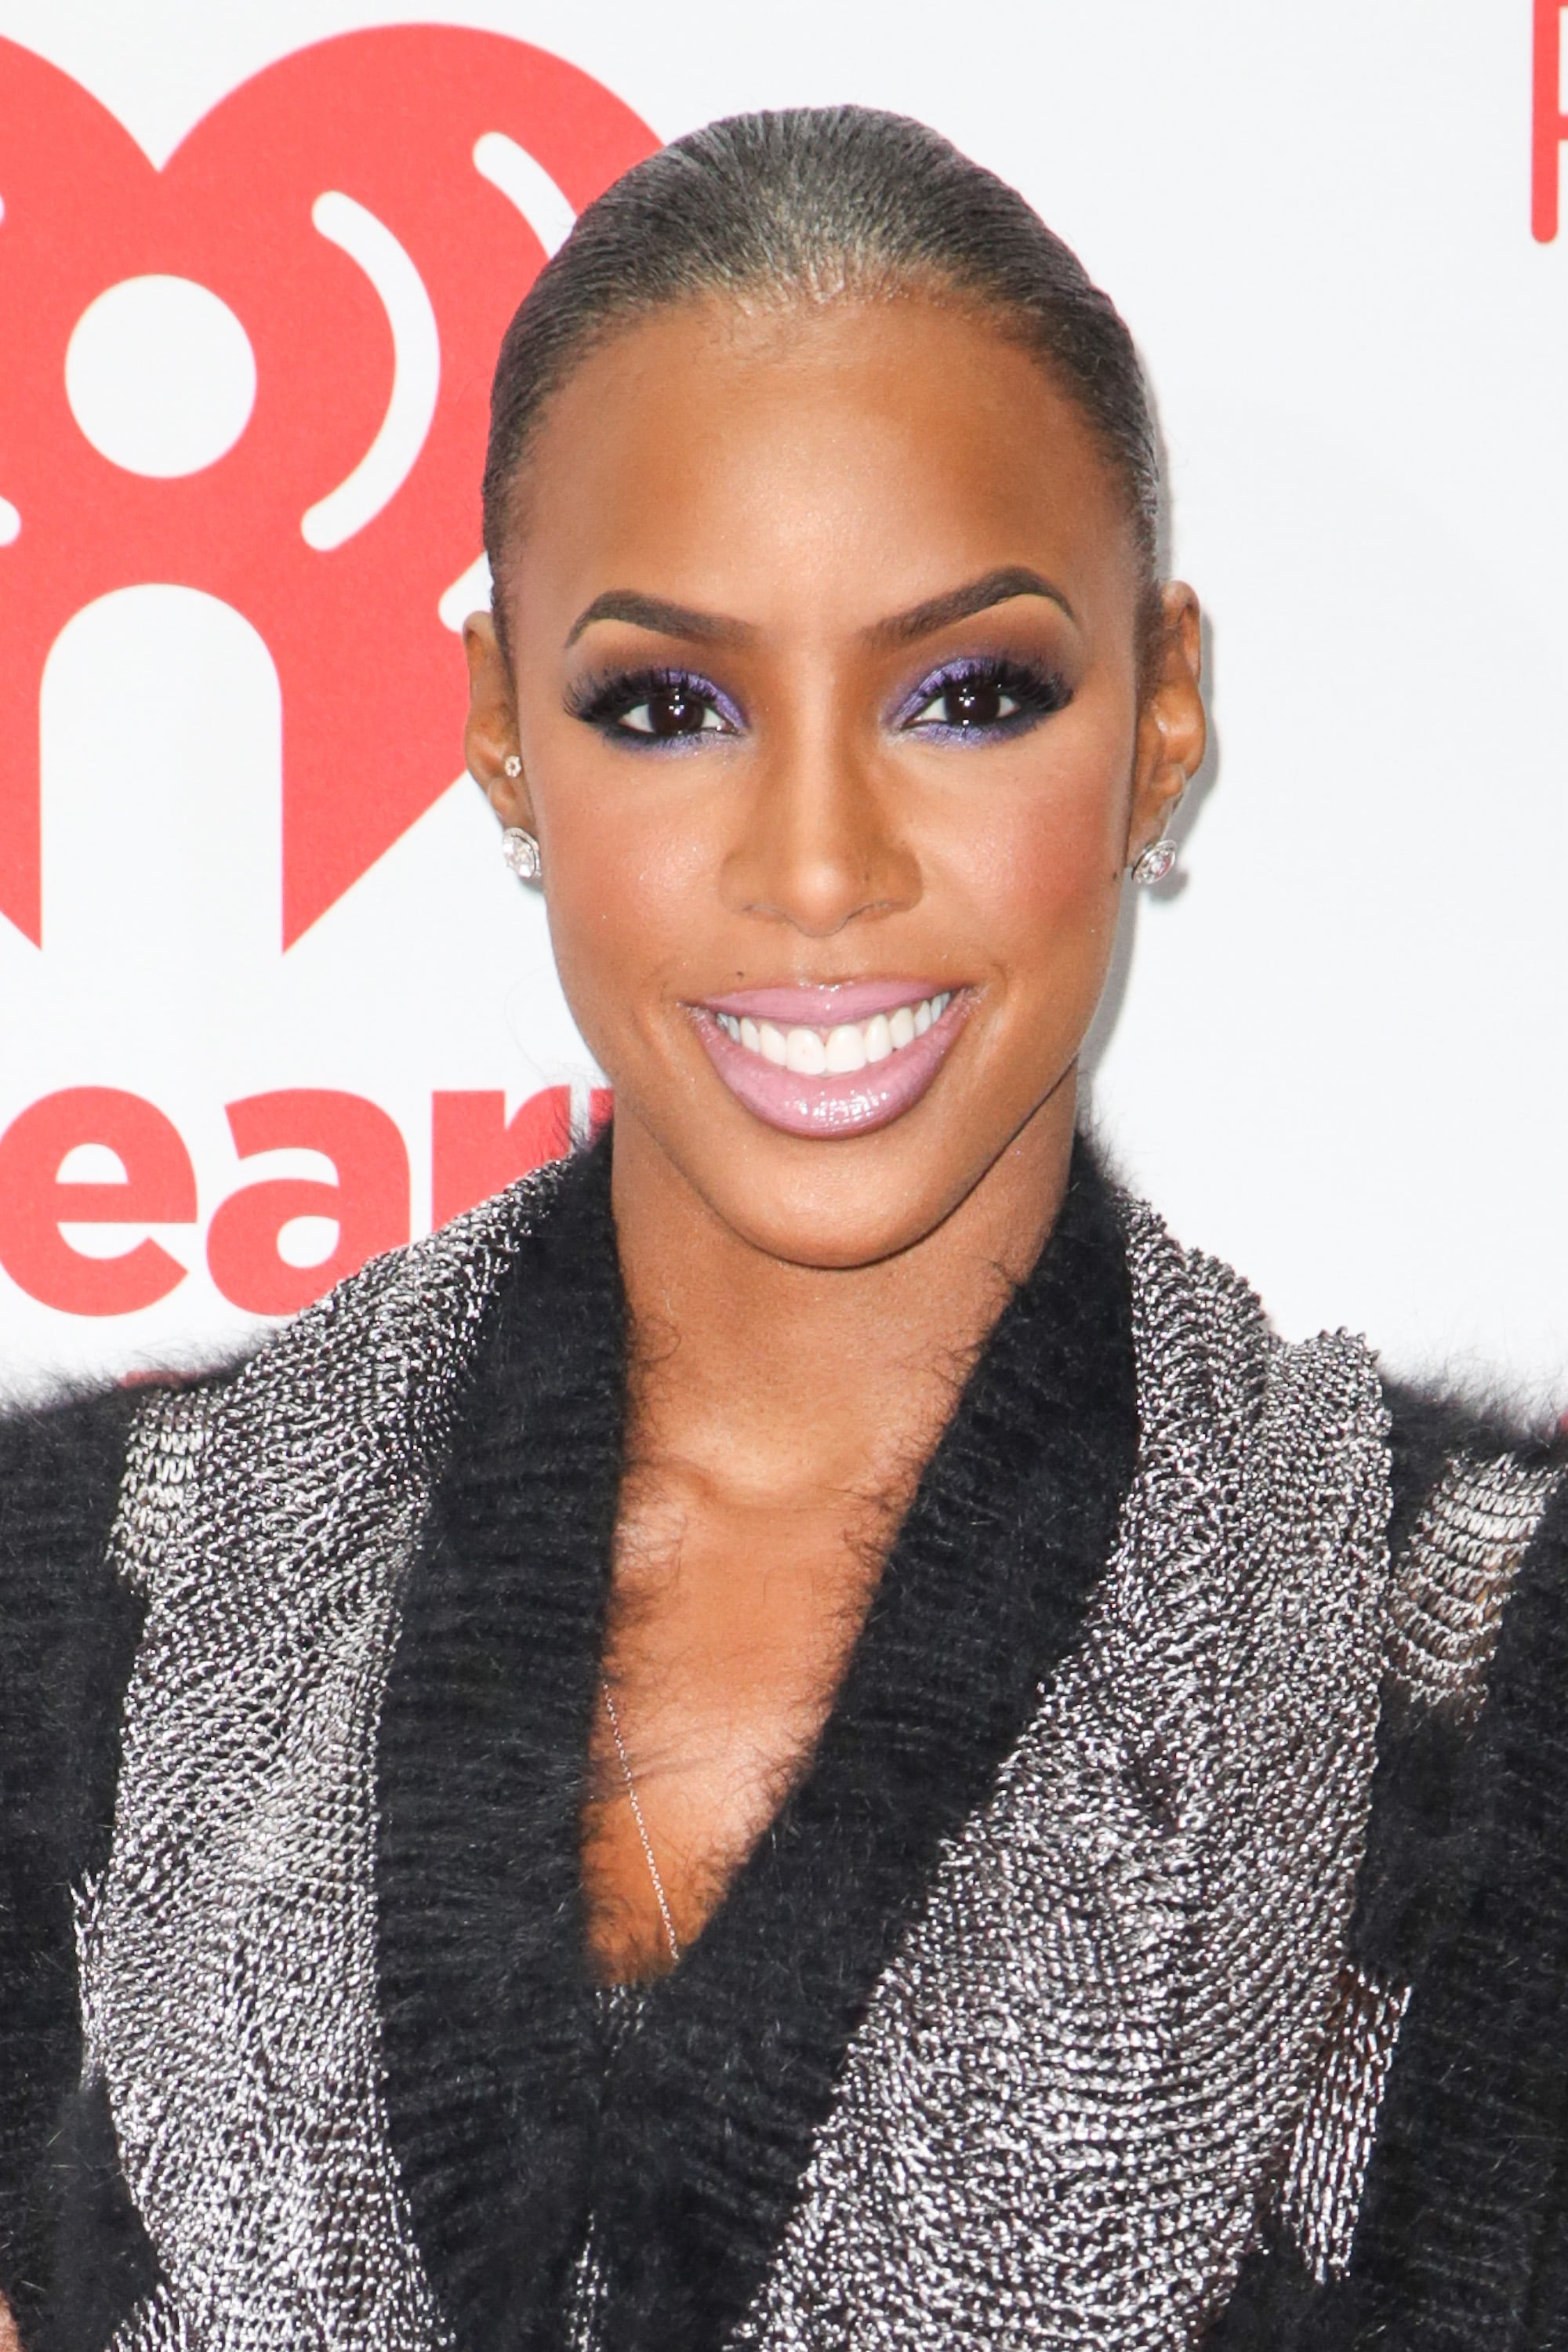 Kelly Rowland stuck with a coordinating makeup palette of purples and pinks at the iHeartRadio Music Festival.